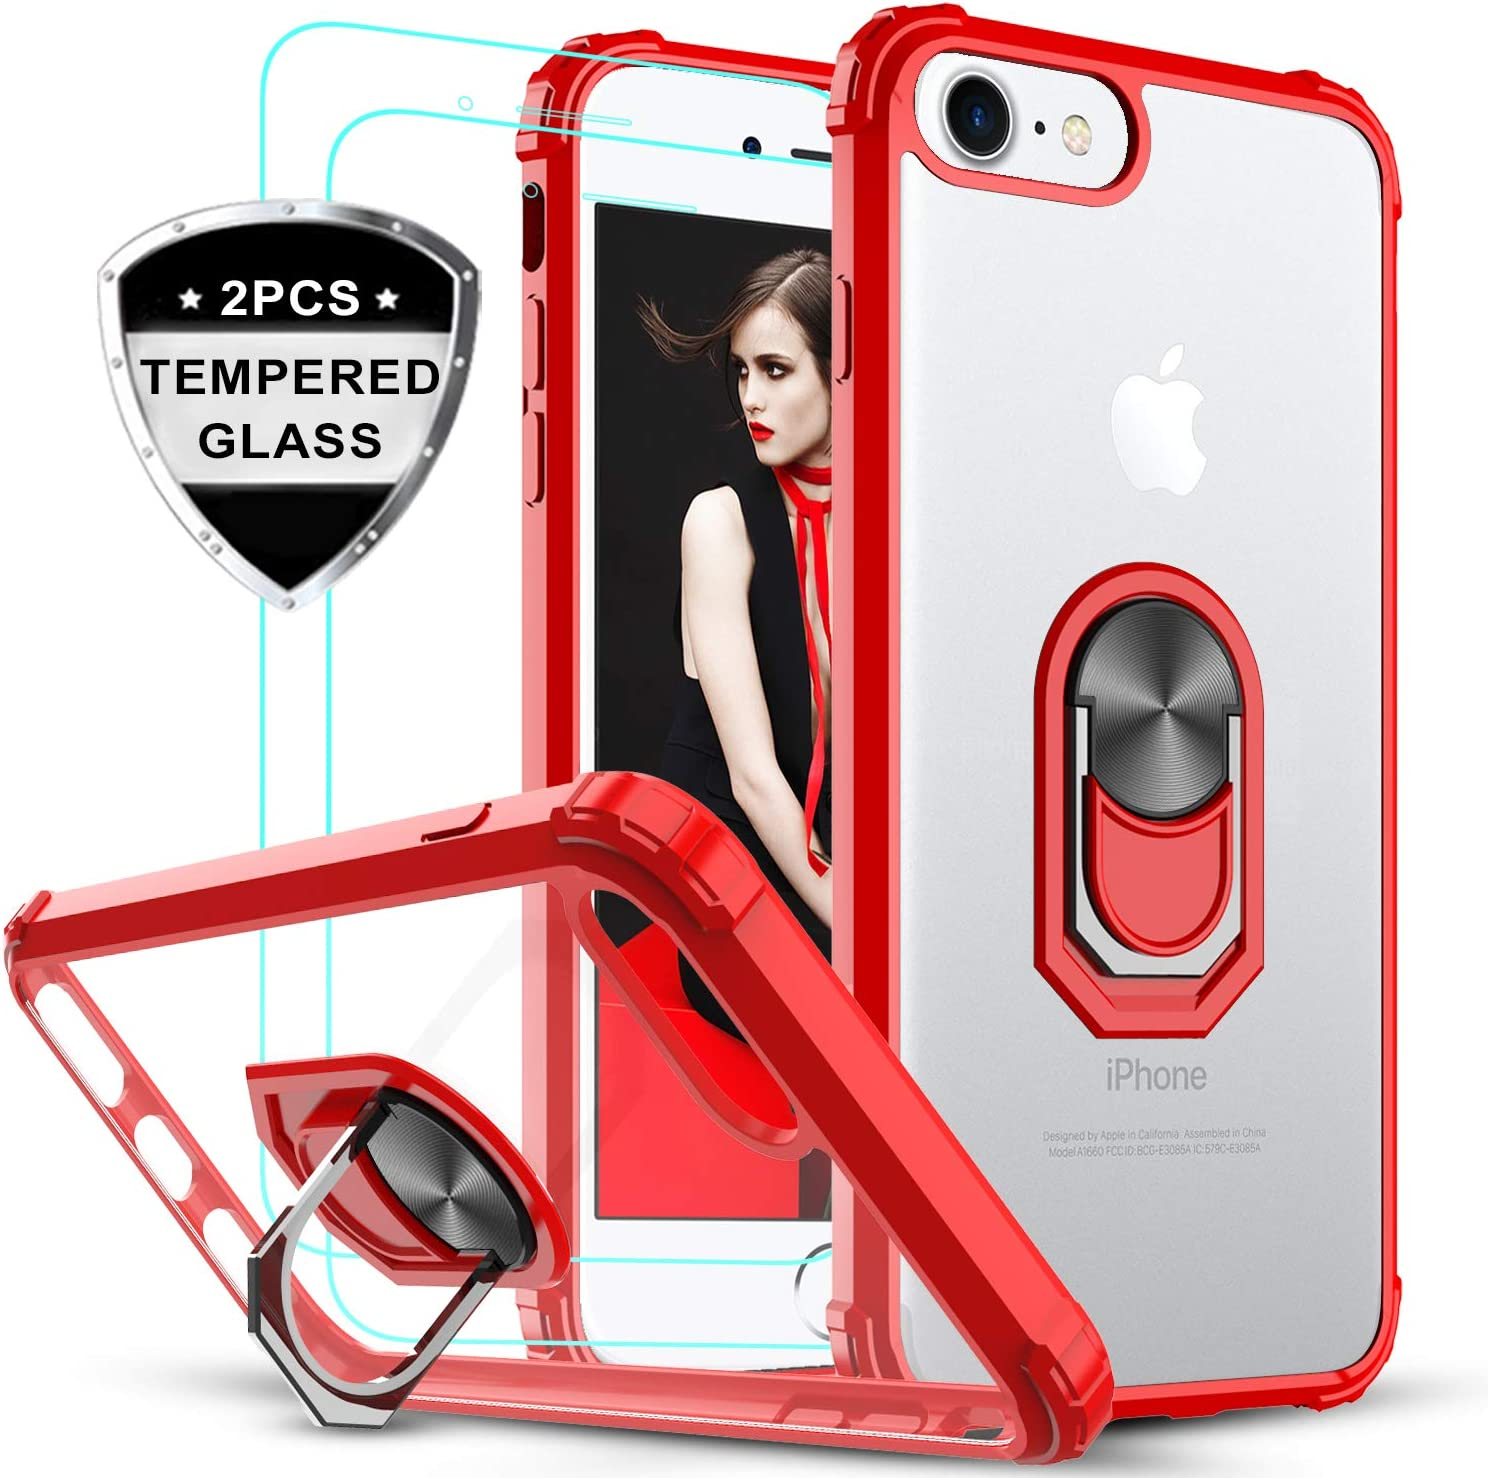 LeYi iPhone SE 2020 Case, iPhone 8/7/ 6/ 6s Case with Tempered Glass Screen Protector [2 Pack], Military-Grade Clear Crystal Phone Case with Car Mount Kickstand for Apple iPhone 6/6s/7/8, Red